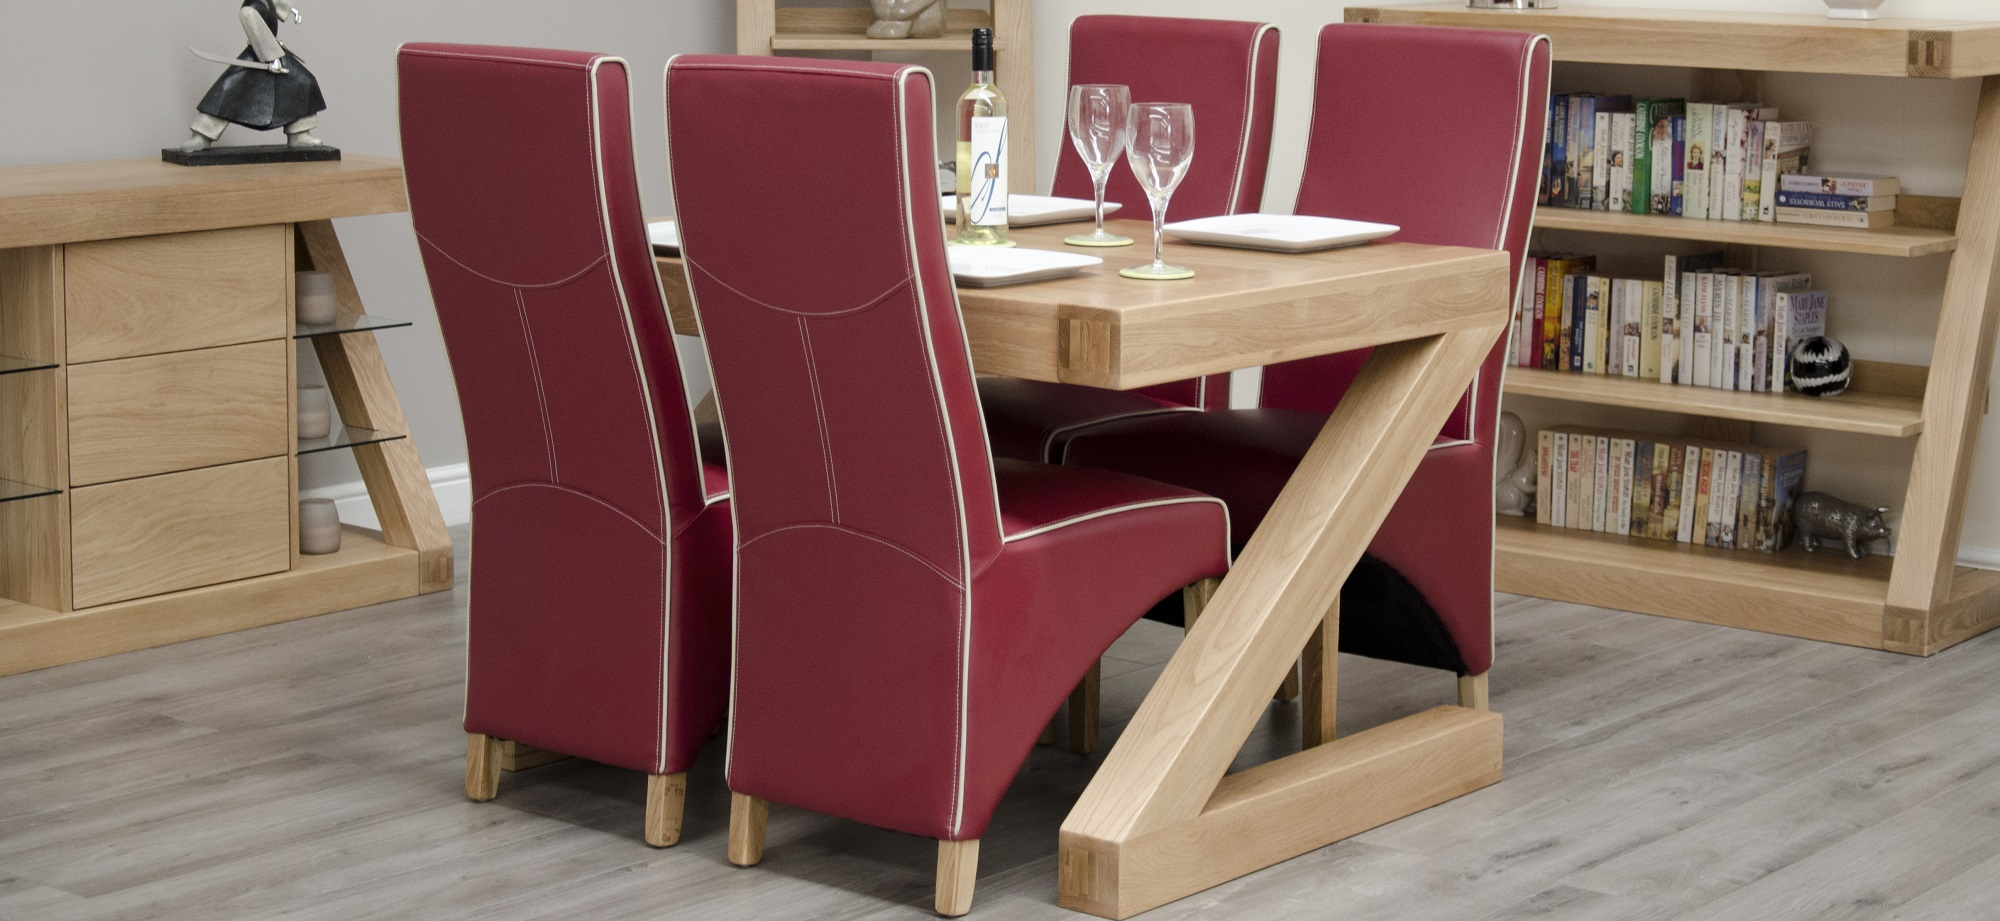 Amazing Solid Oak Dining Room Chairs 608 x 551 · 120 kB · jpeg